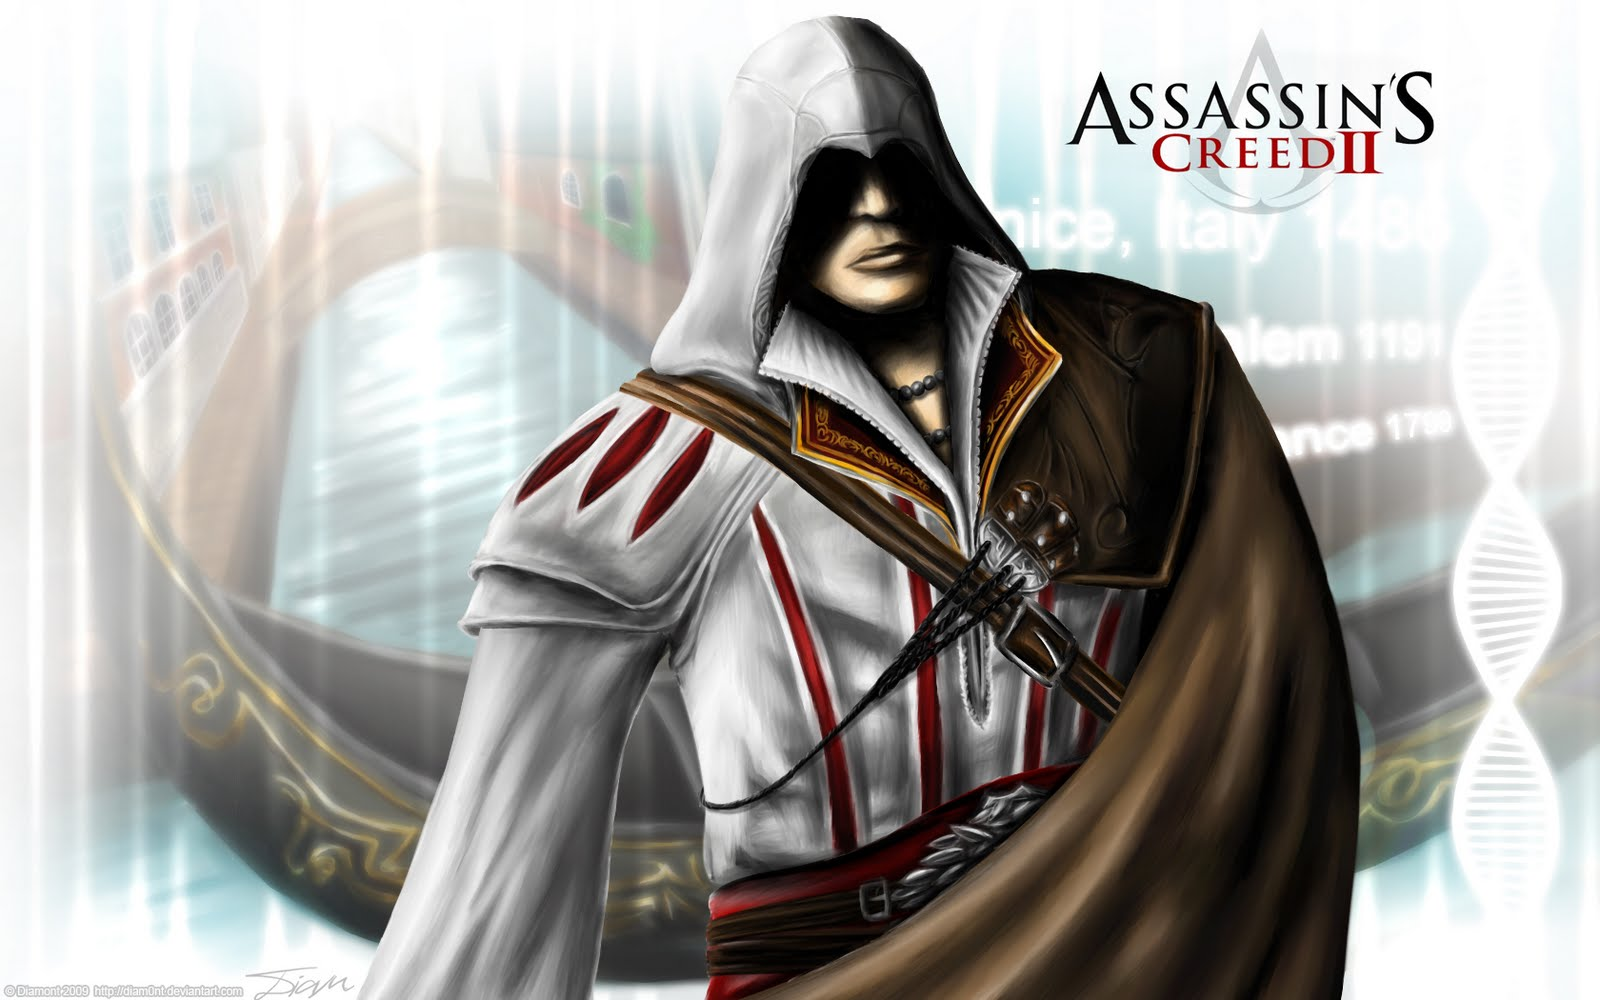 ezio assassins creed ii - photo #15